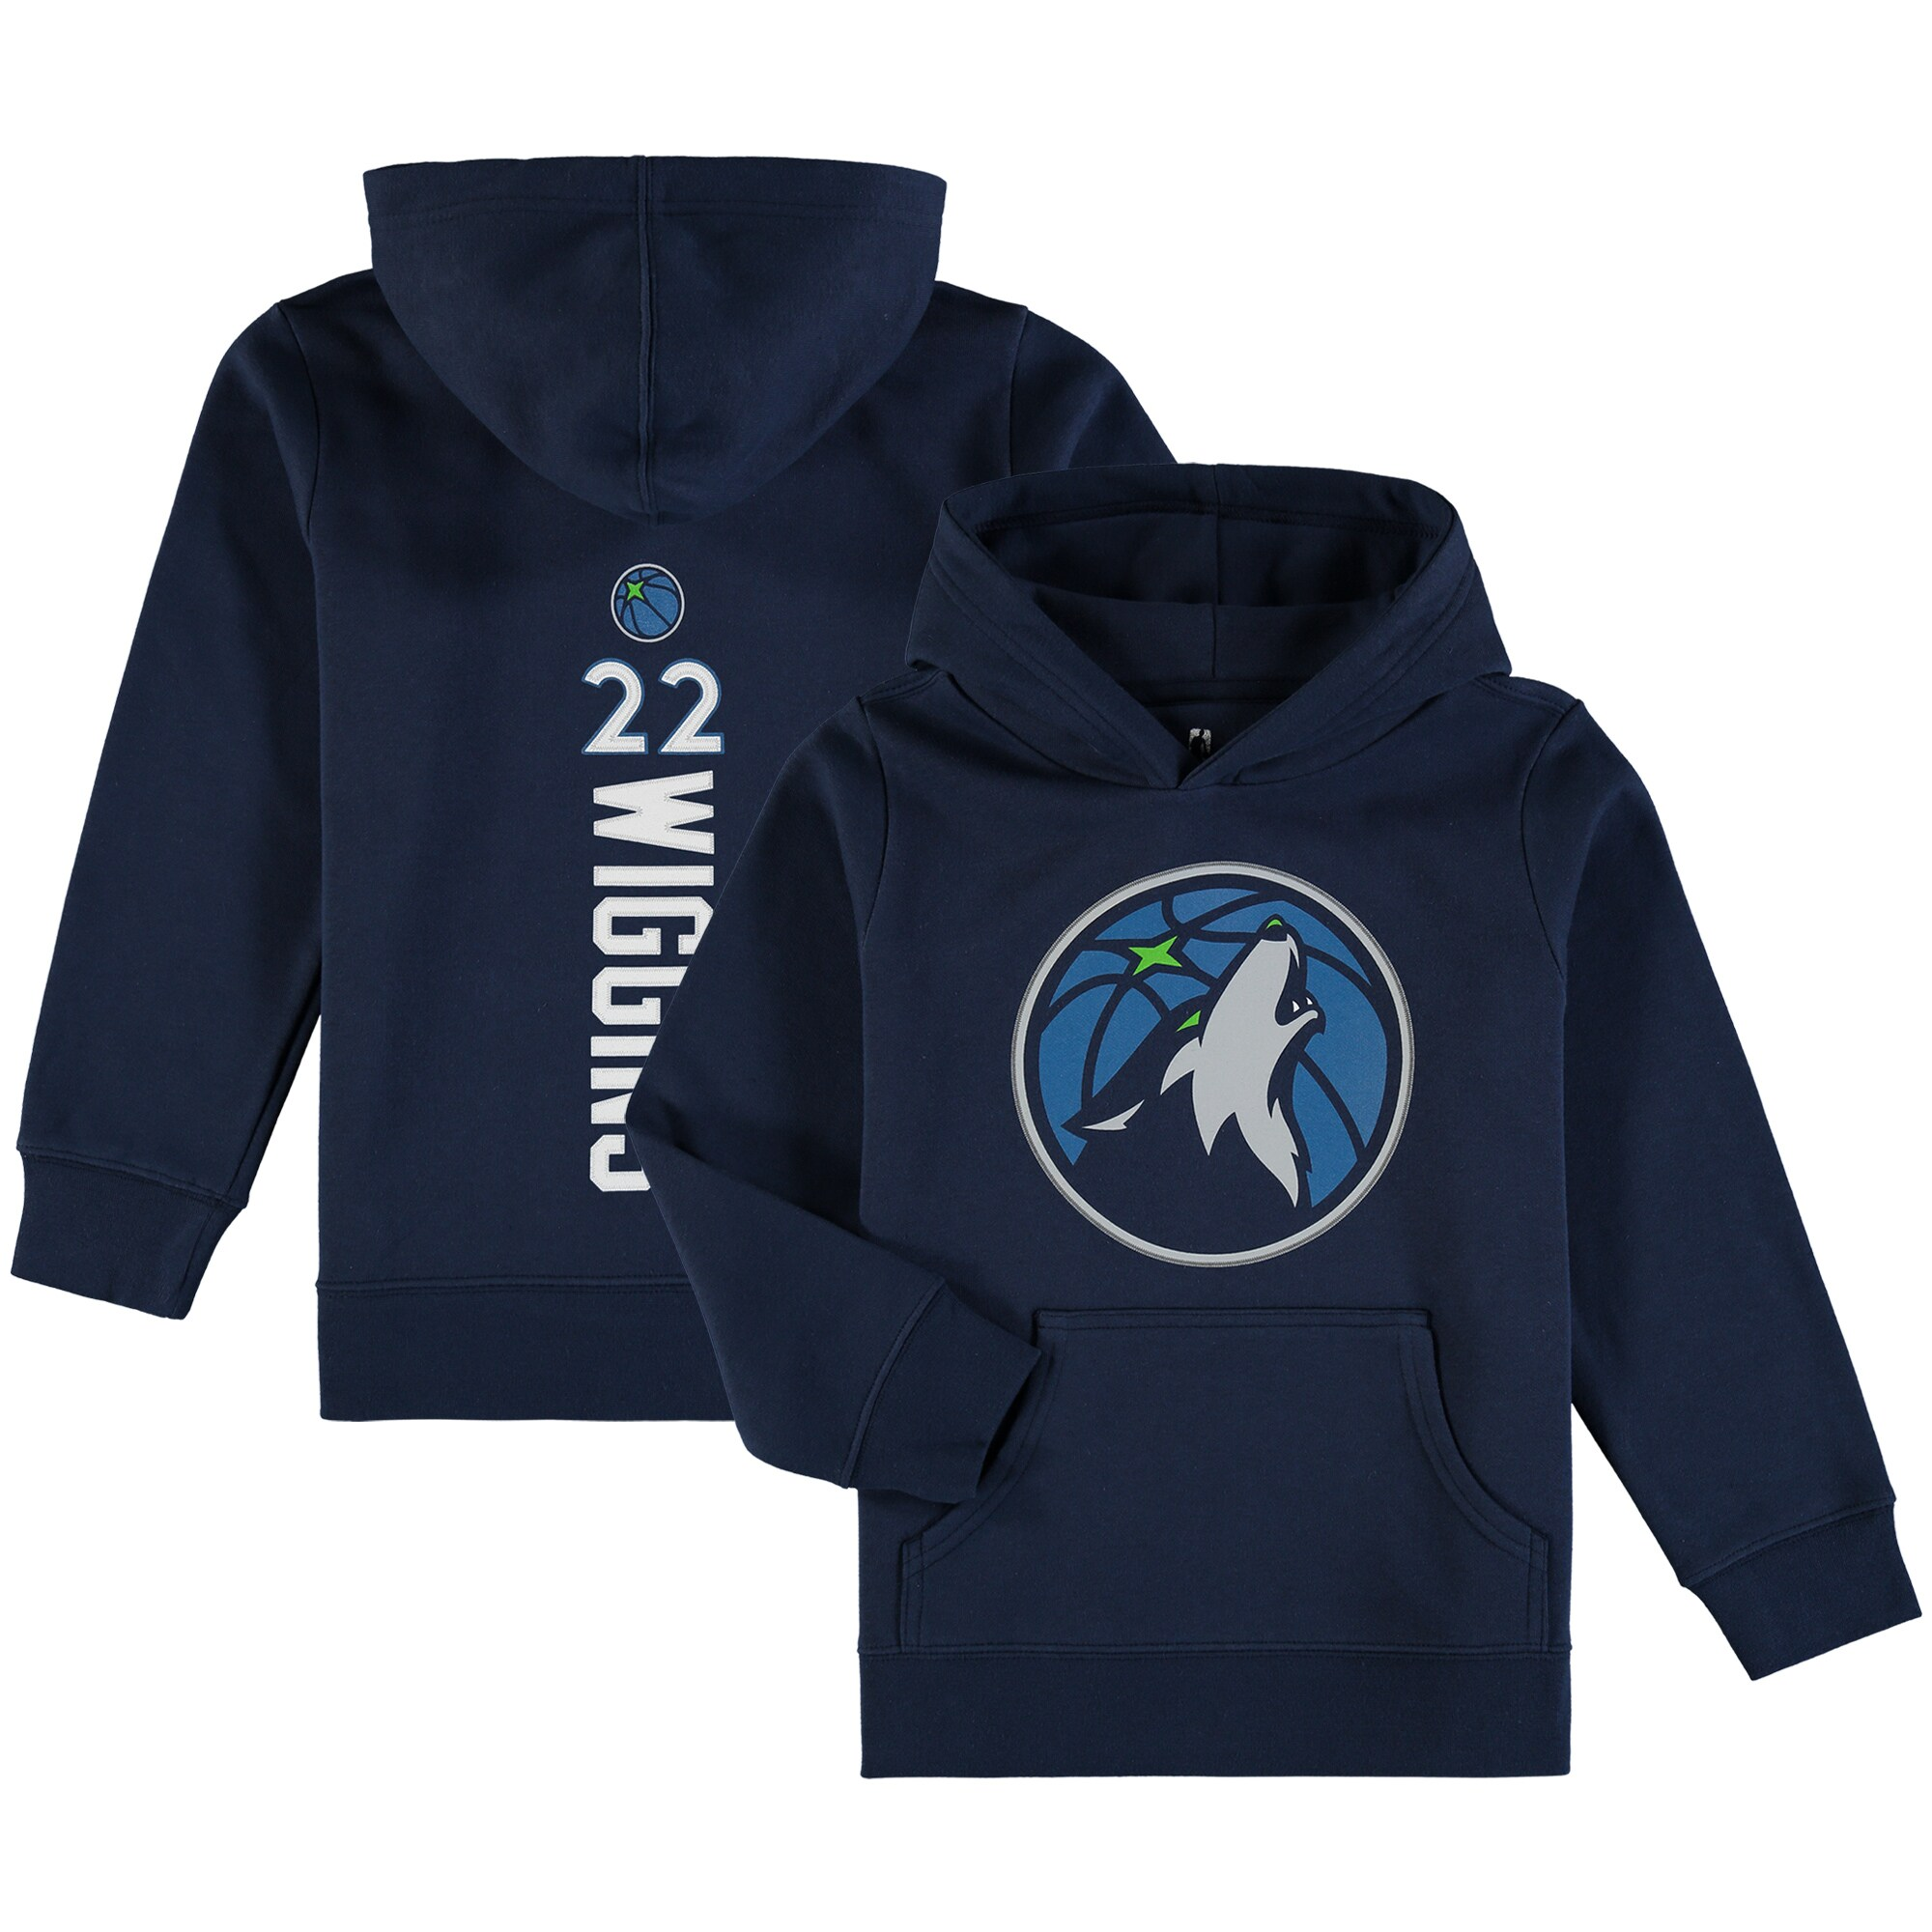 Andrew Wiggins Minnesota Timberwolves Fanatics Branded Youth Backer Name & Number Pullover Hoodie - Navy